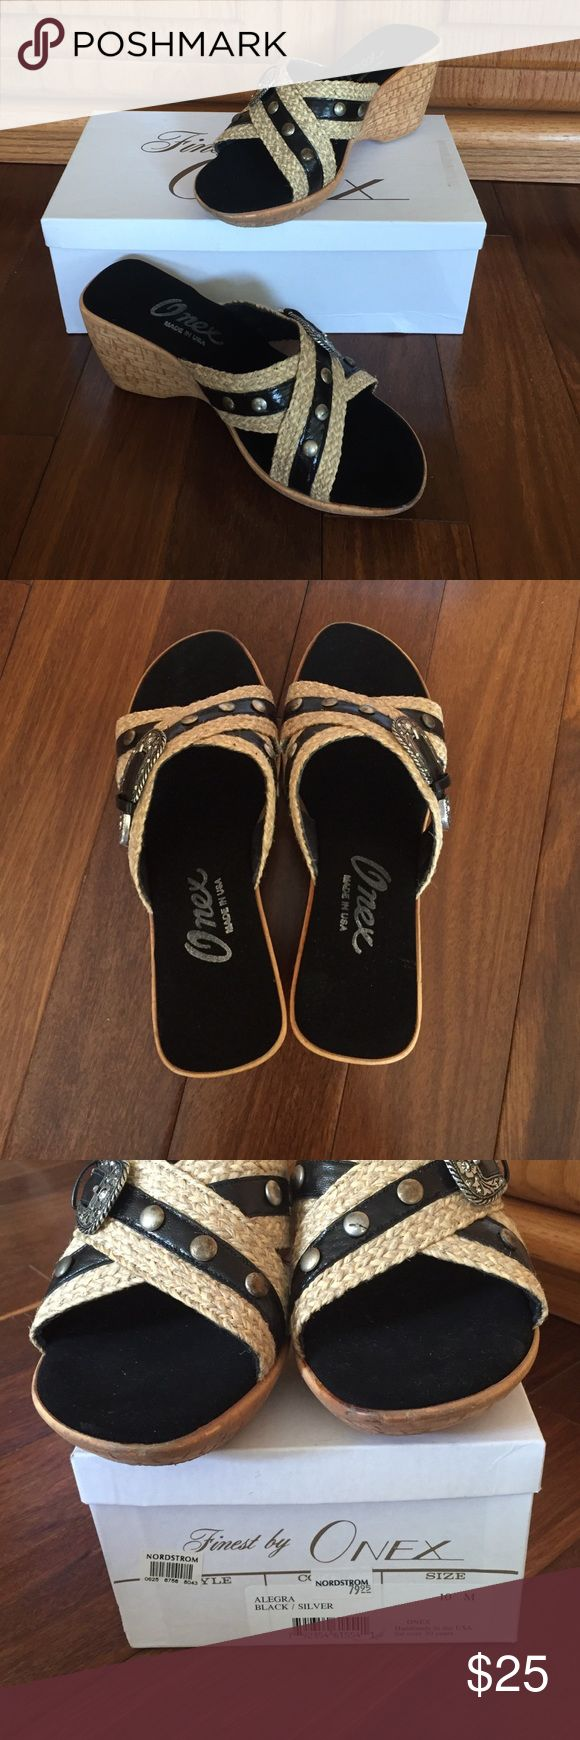 Black sandals Never worn. Super cute and comfortable for the summer. From Nordstroms Finest by Onex Shoes Sandals